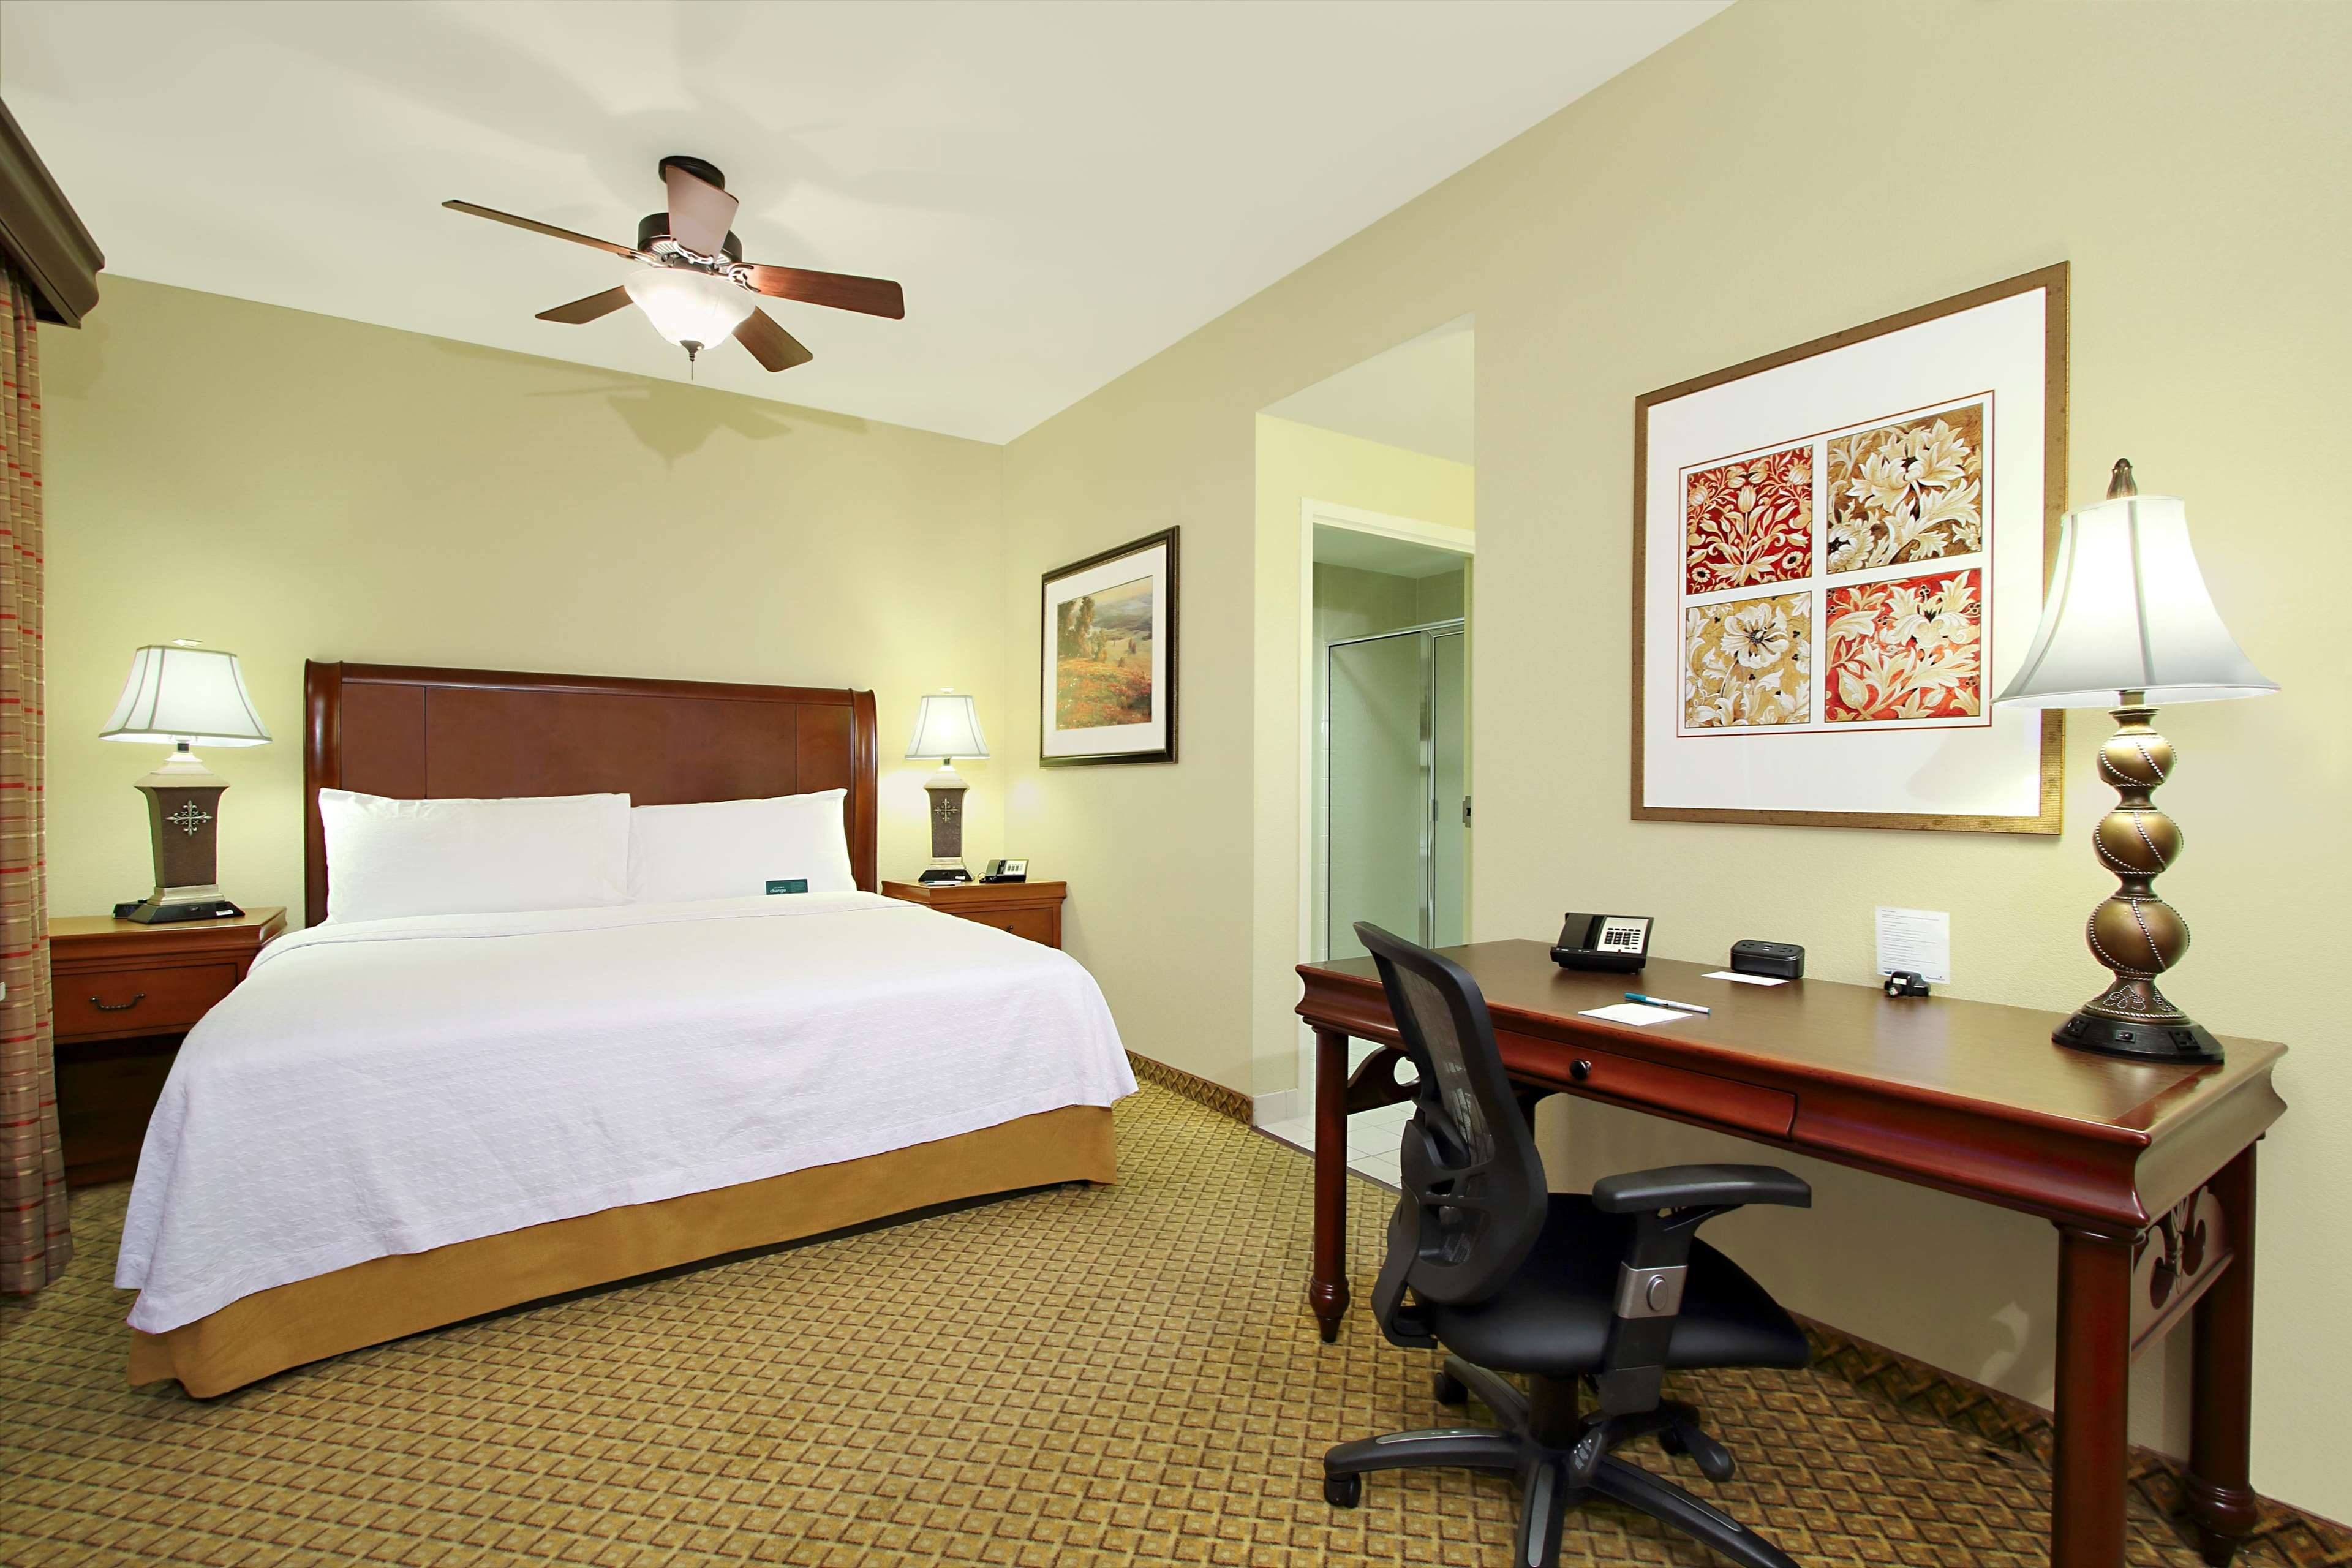 Homewood Suites by Hilton Miami - Airport West image 11